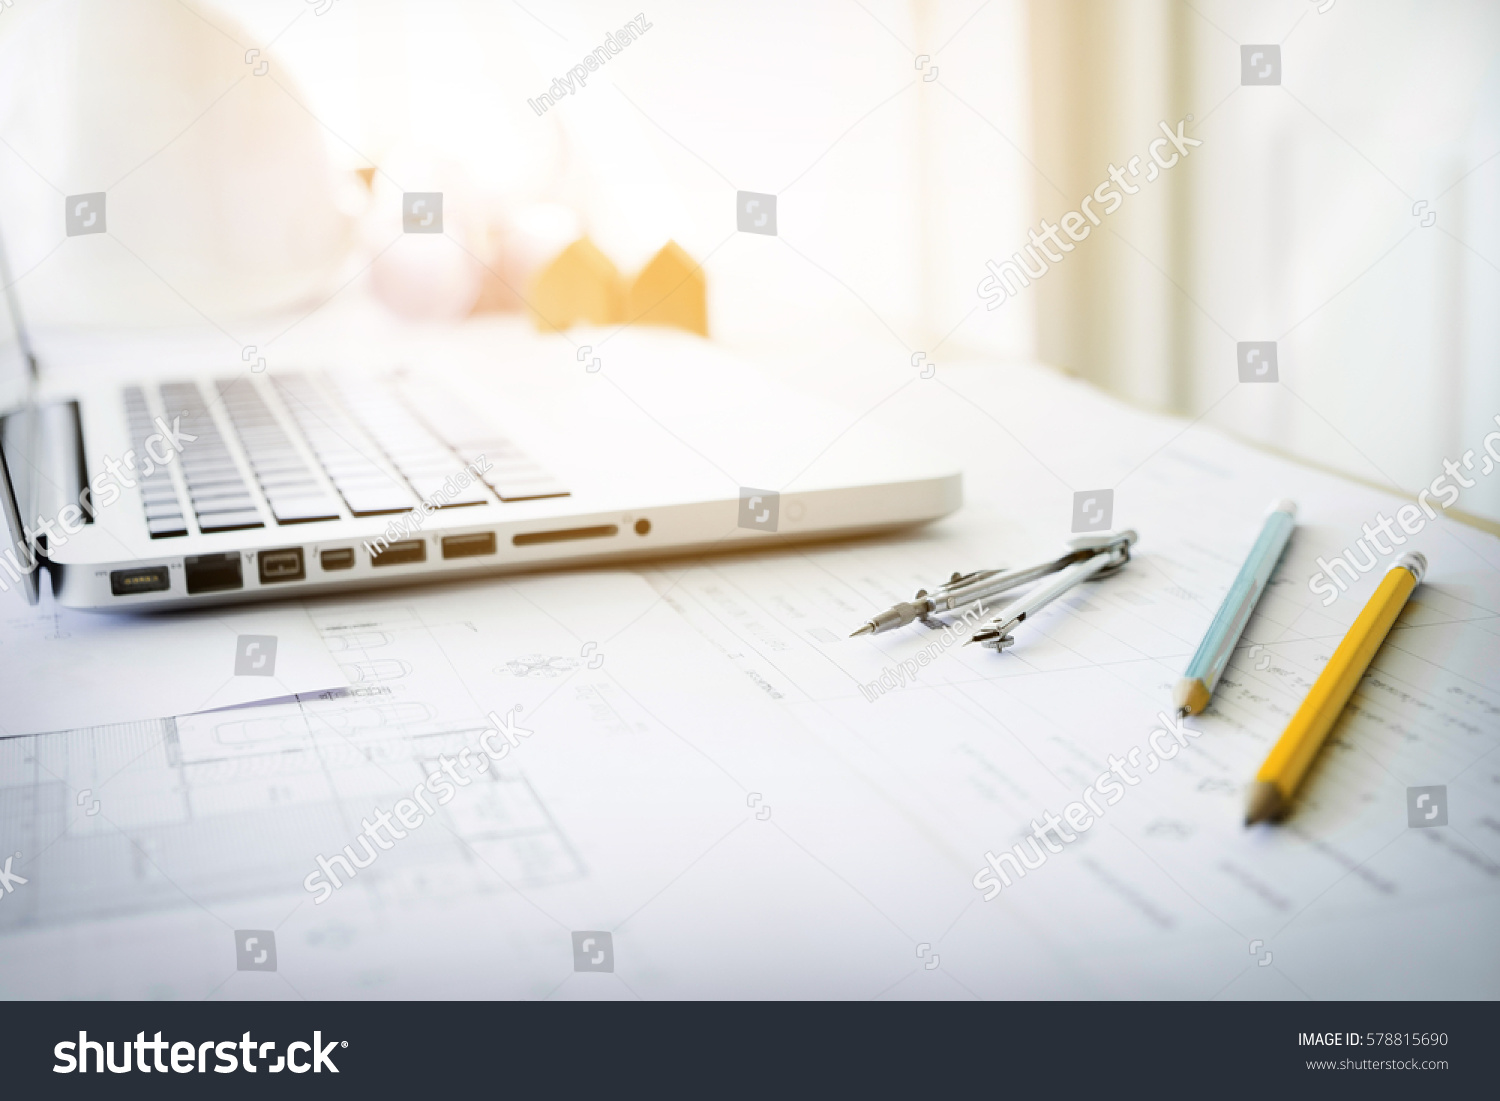 Construction equipment repair work drawings building stock for Architectural engineering concepts